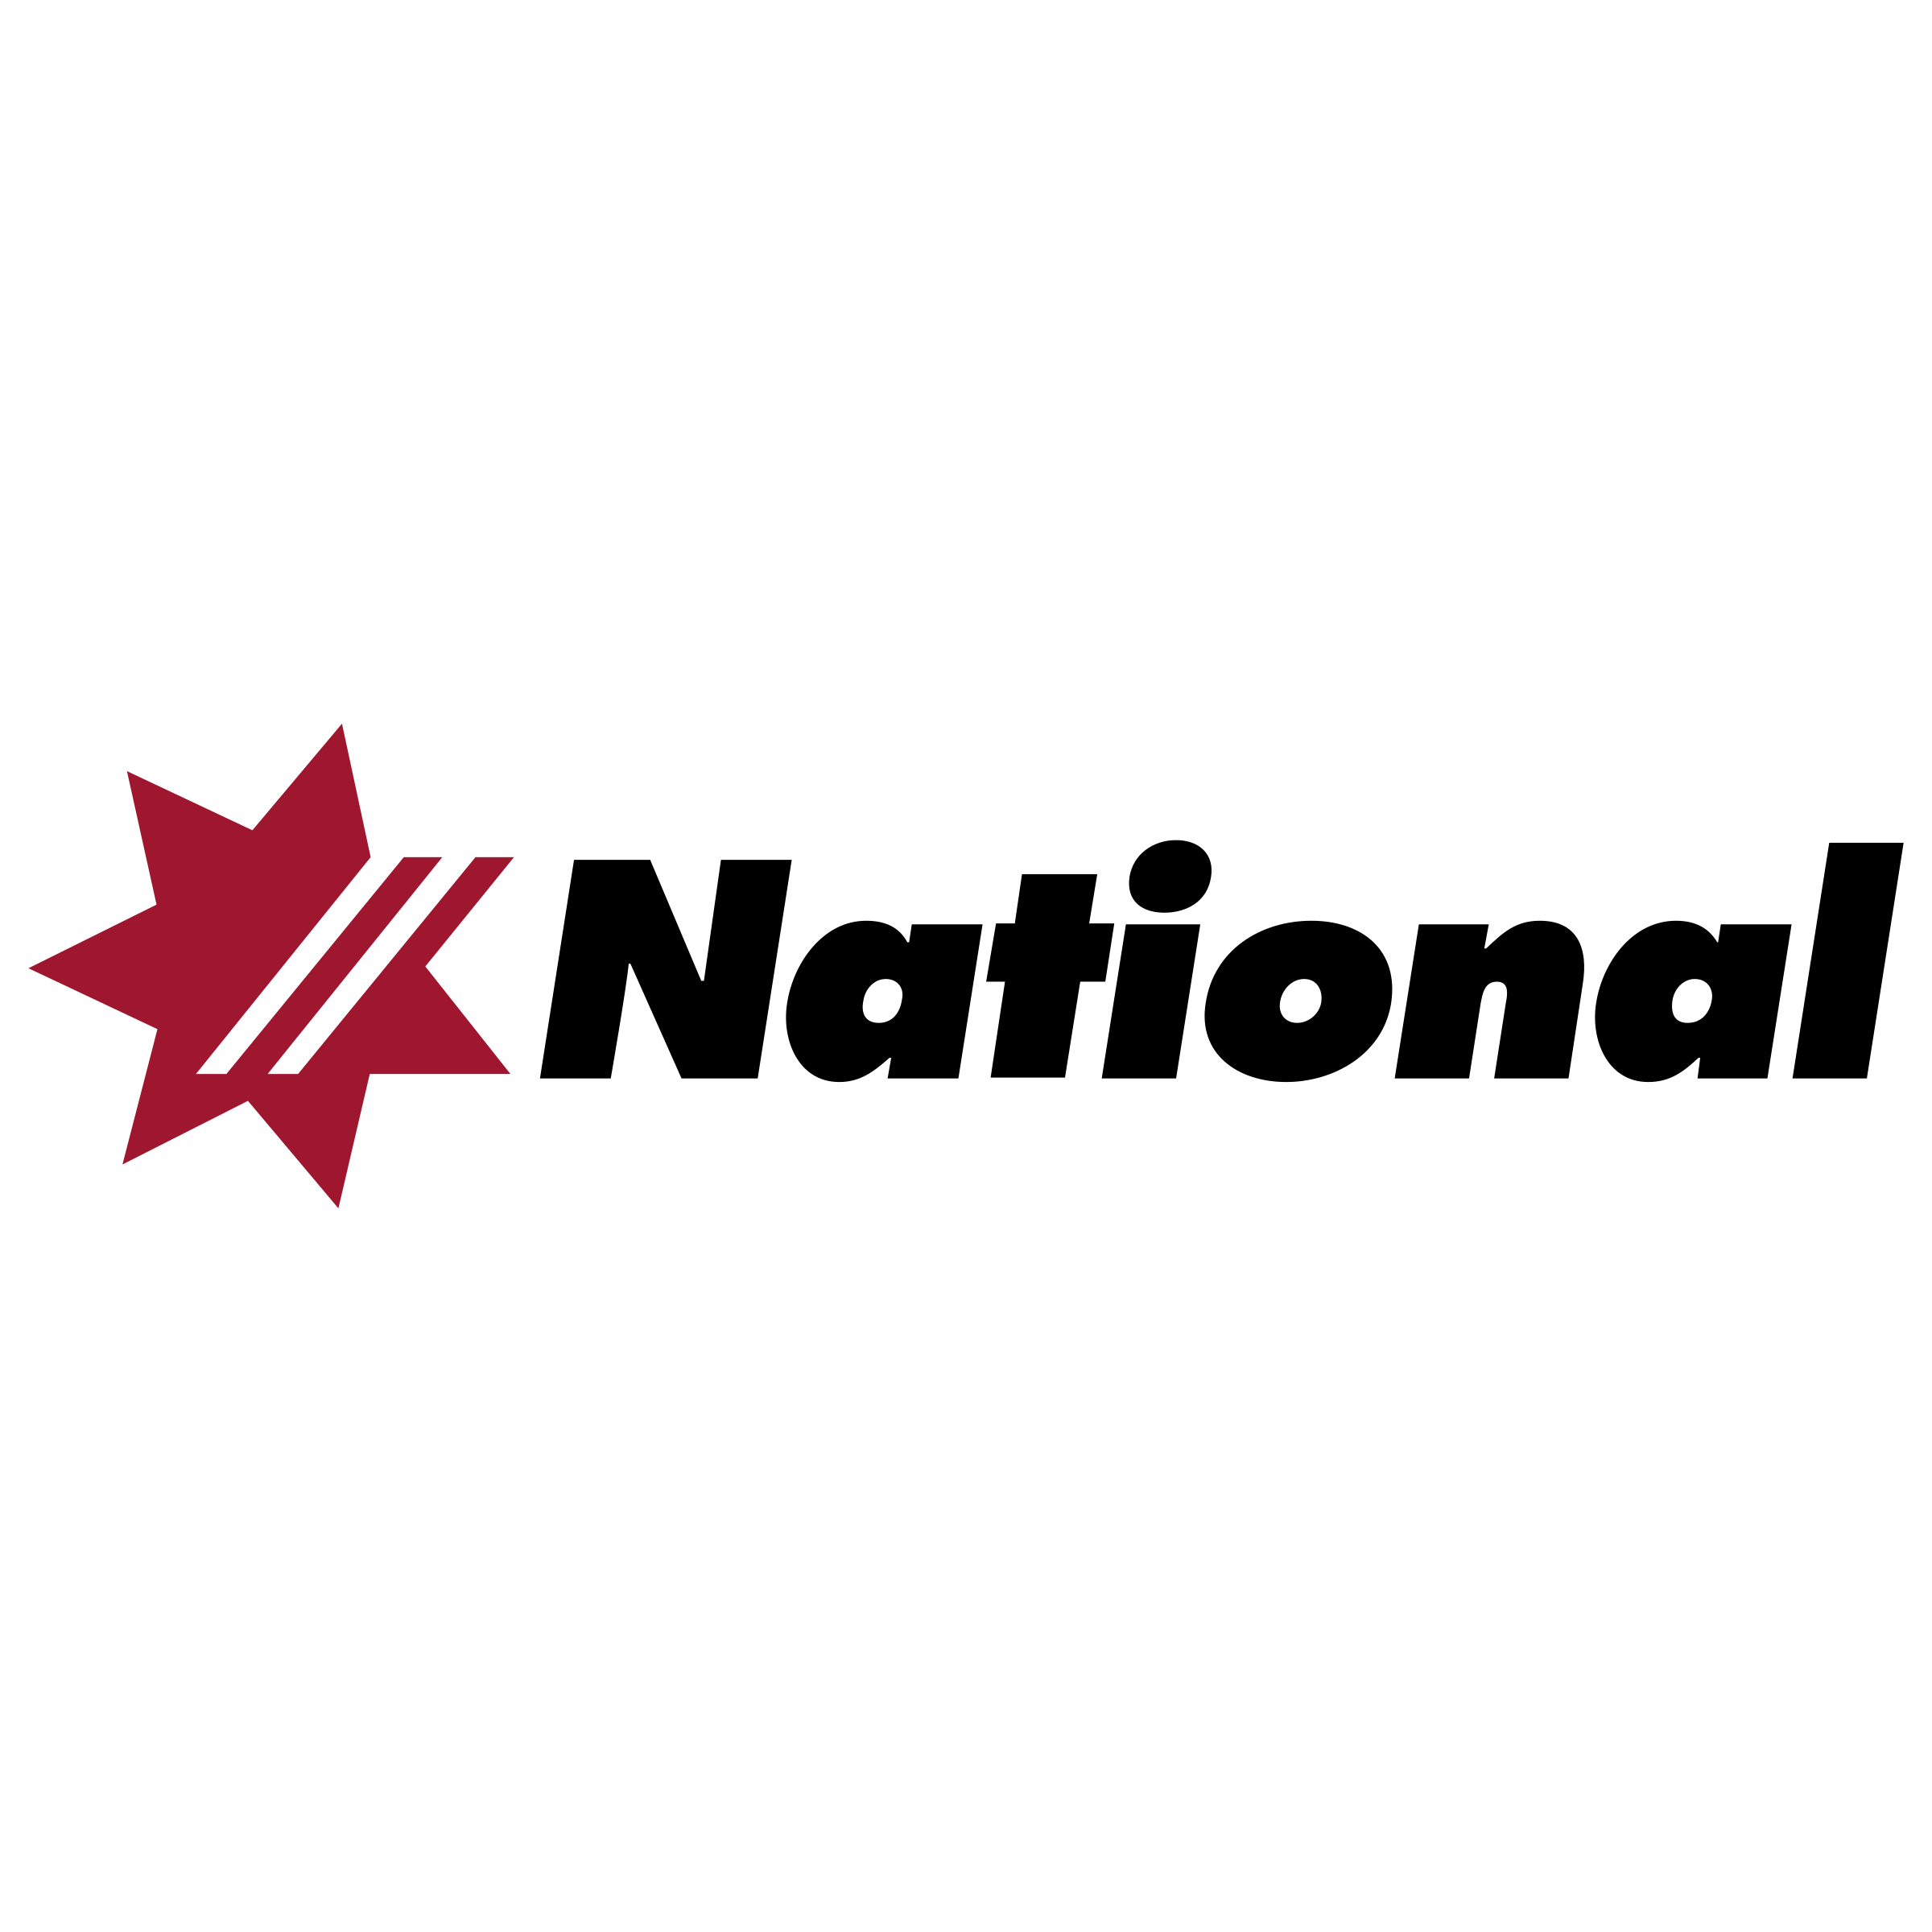 Australia transparent national. Bank logo png svg